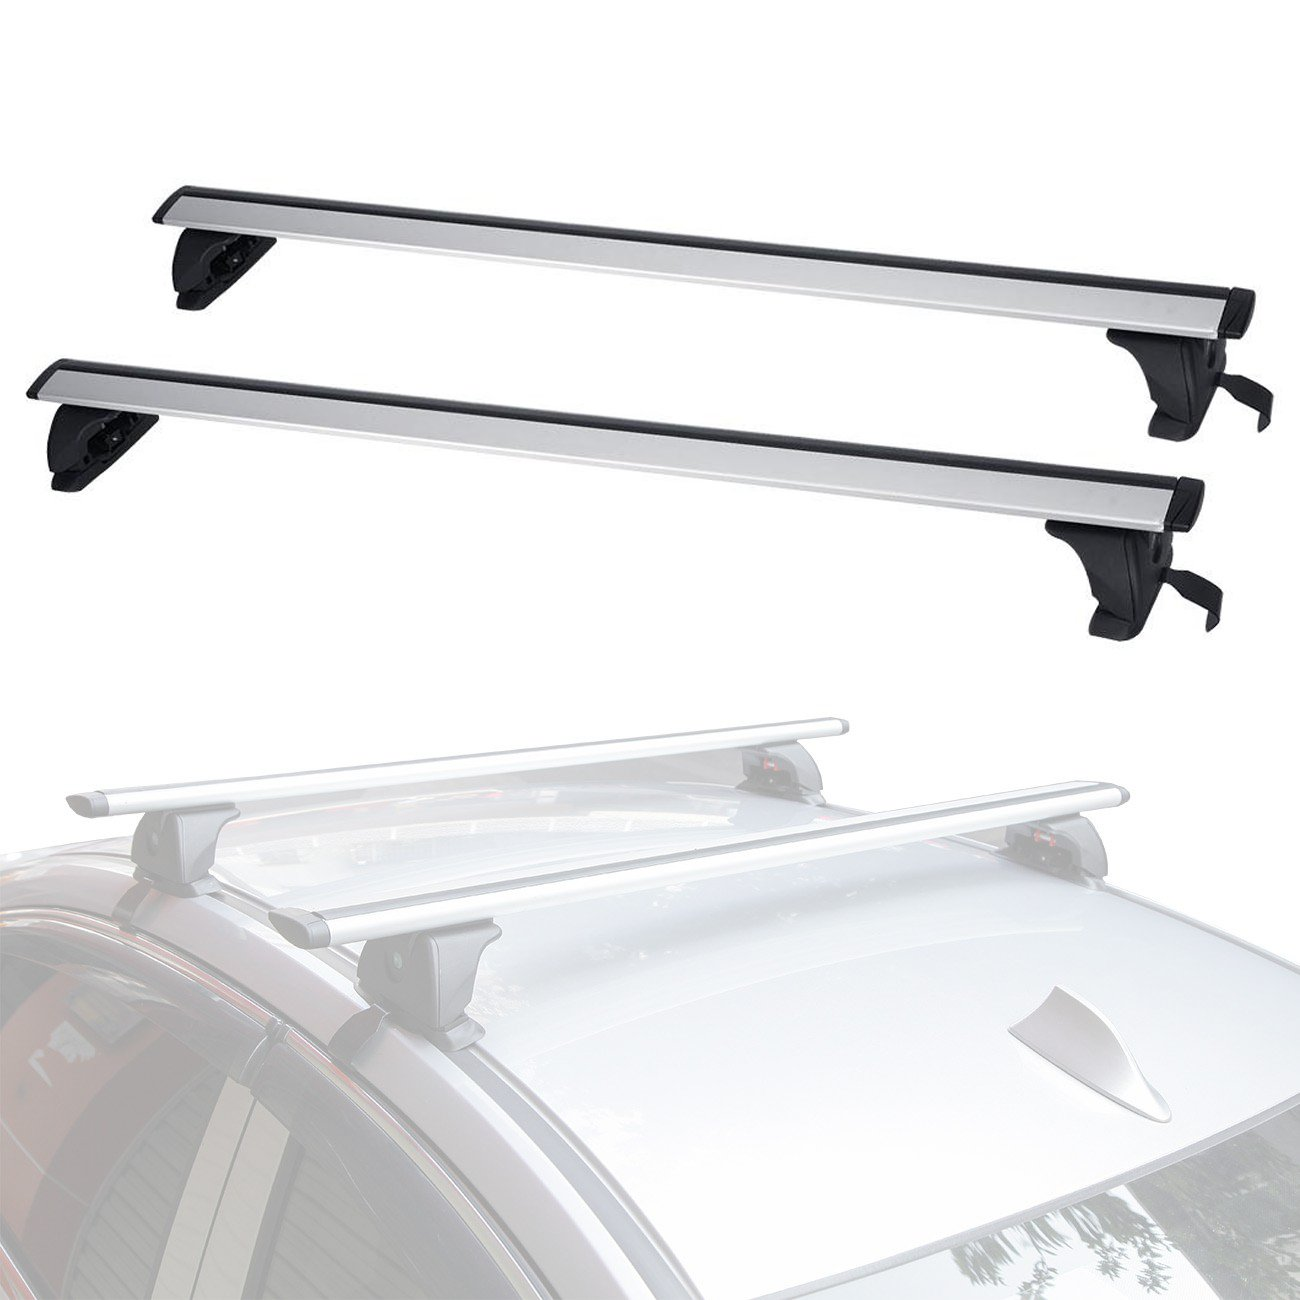 ALAVENTE Universal Roof Rack Cross Bar Set with Lock Adjustable for Most Vehicle Without Roof Side Rail (Pack of 2)